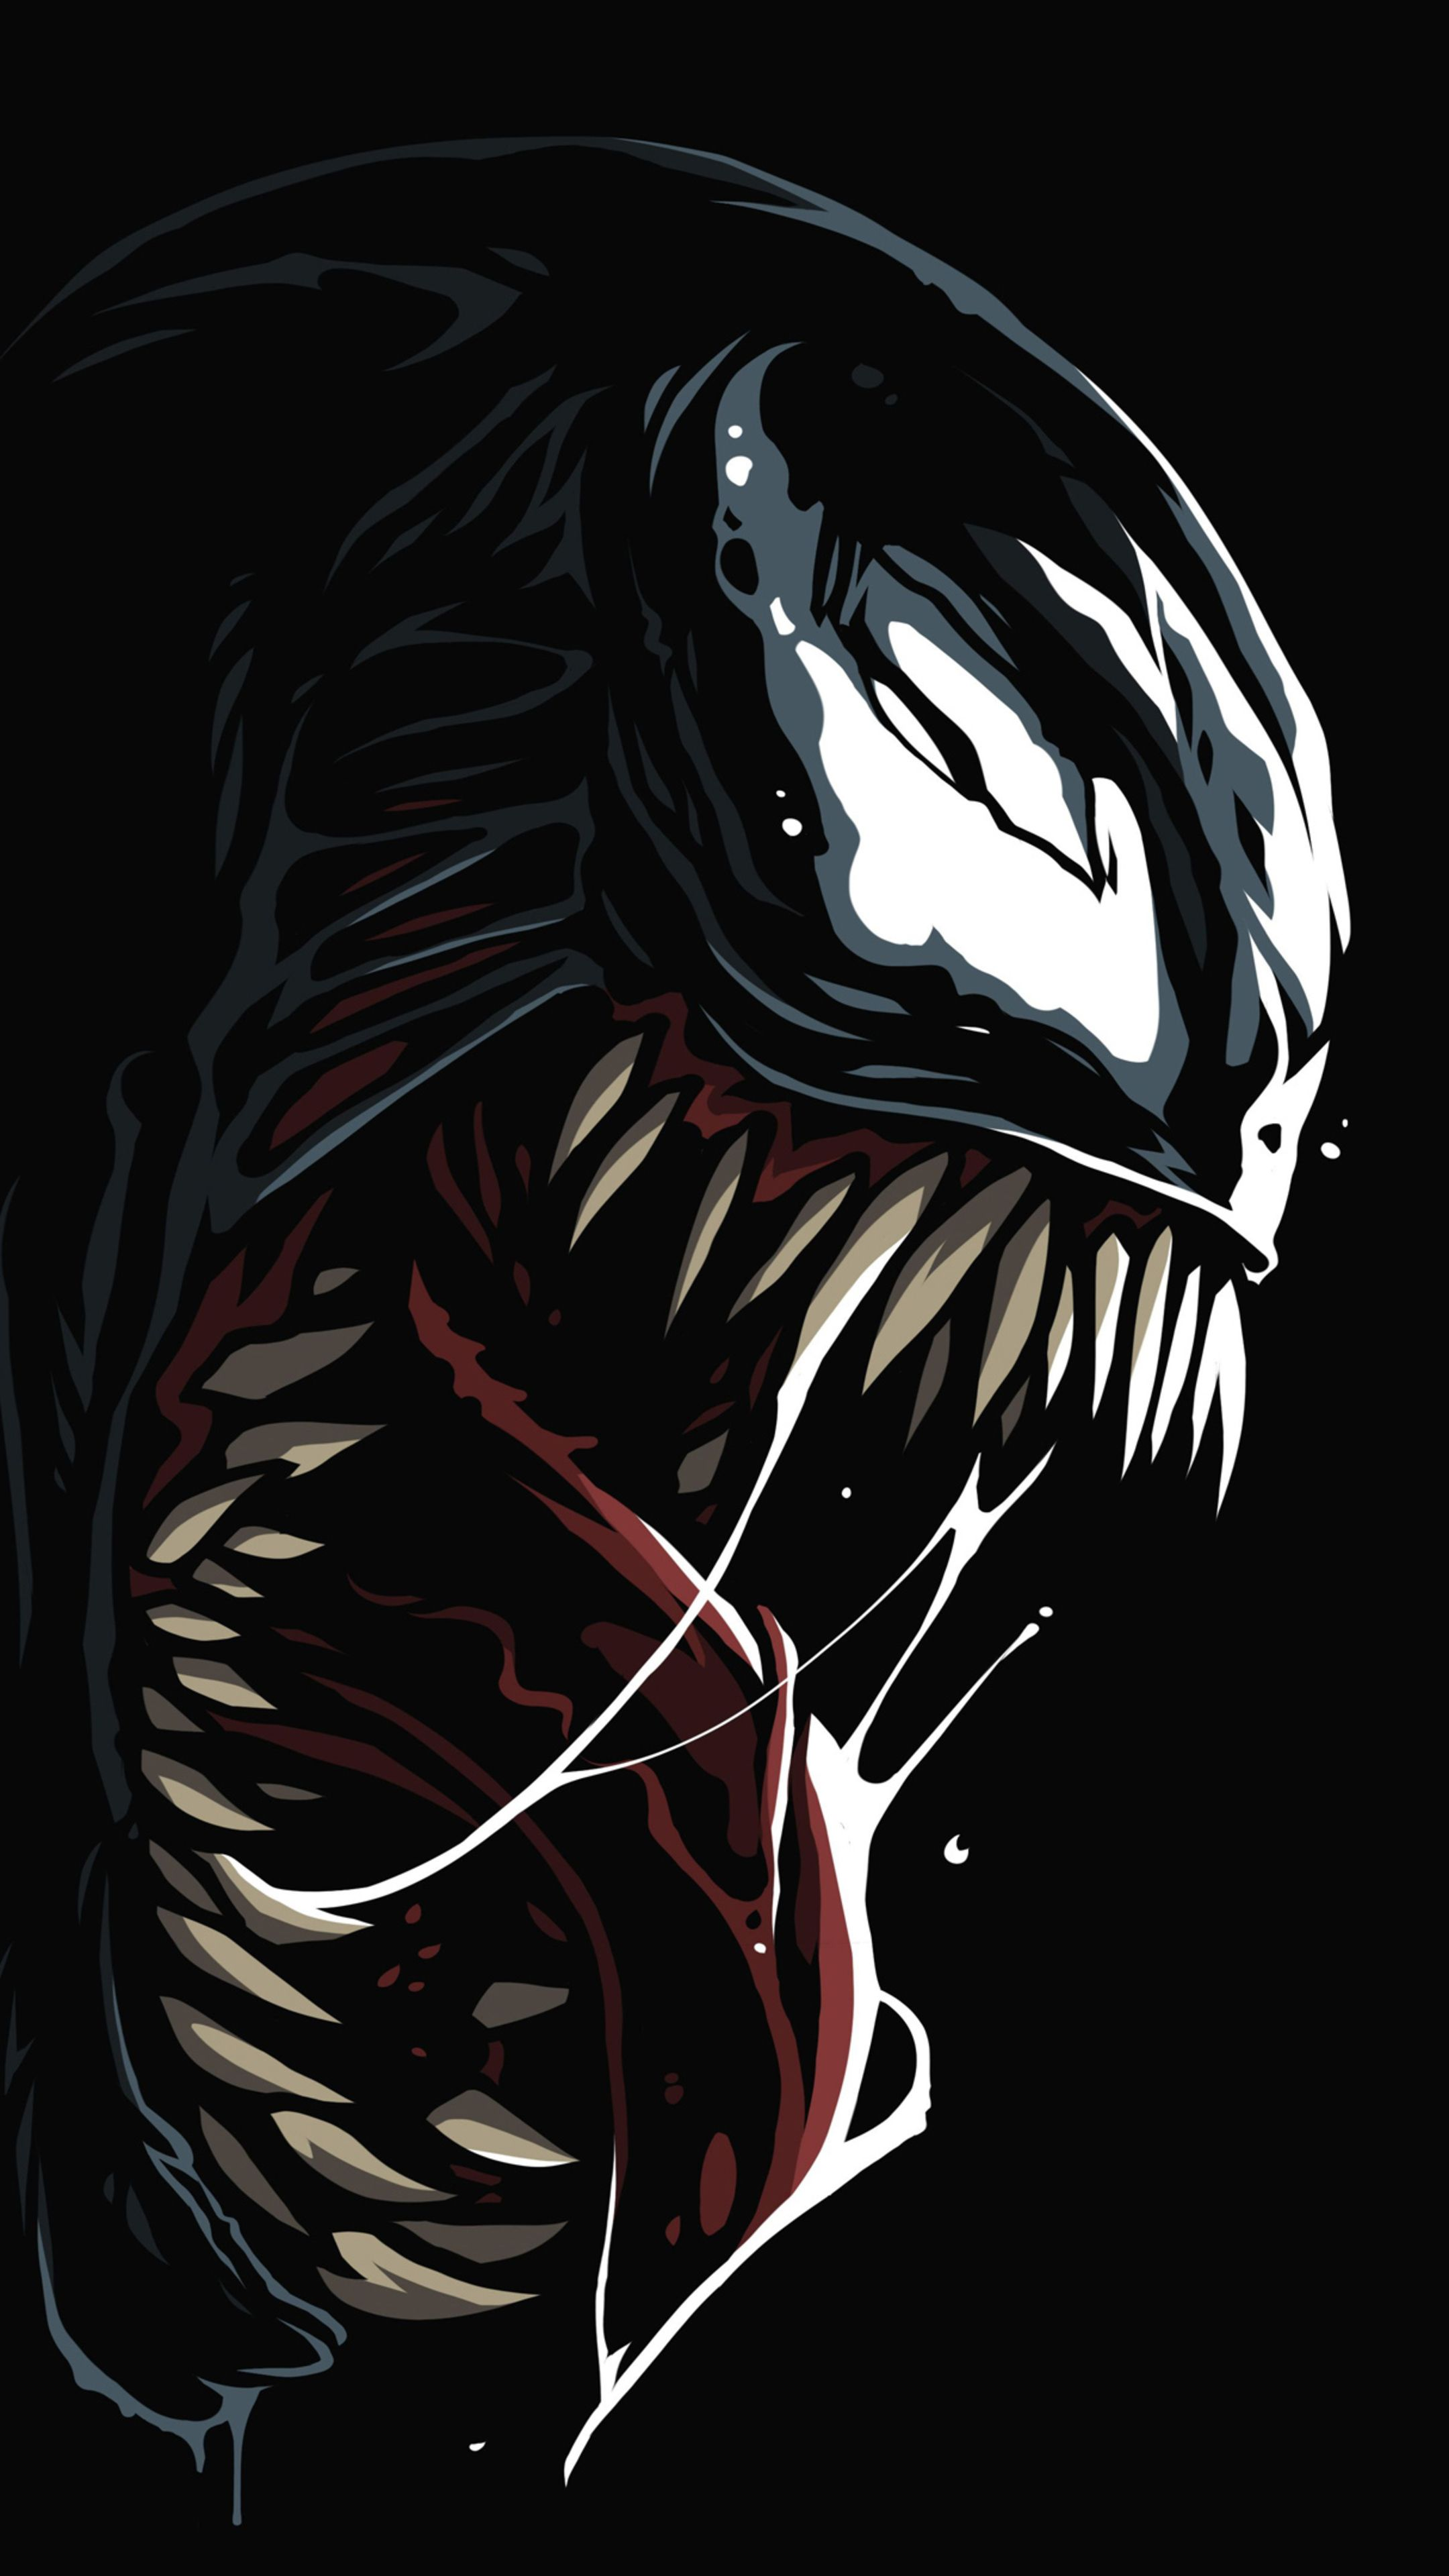 Venom Amoled 4k In 2160x3840 Resolution Deadpool Wallpaper Hd Anime Wallpapers Marvel Wallpaper Hd